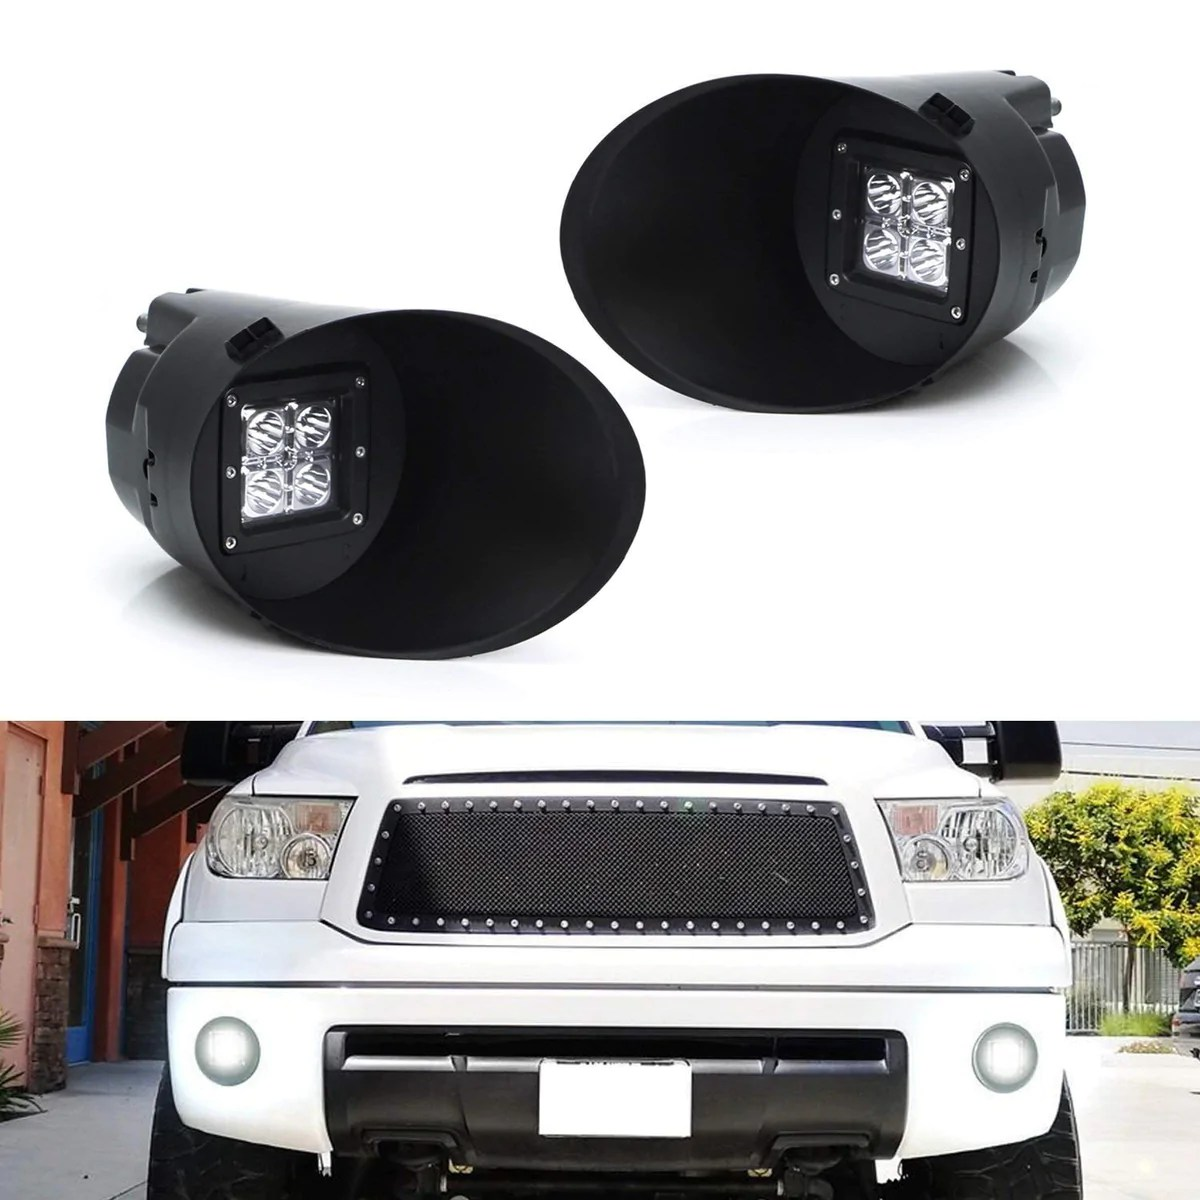 hight resolution of led pod light fog lamp kit for 2007 13 toyota tundra includes 2 20w high power cree led cubes foglight bezel covers fog location mounting brackets